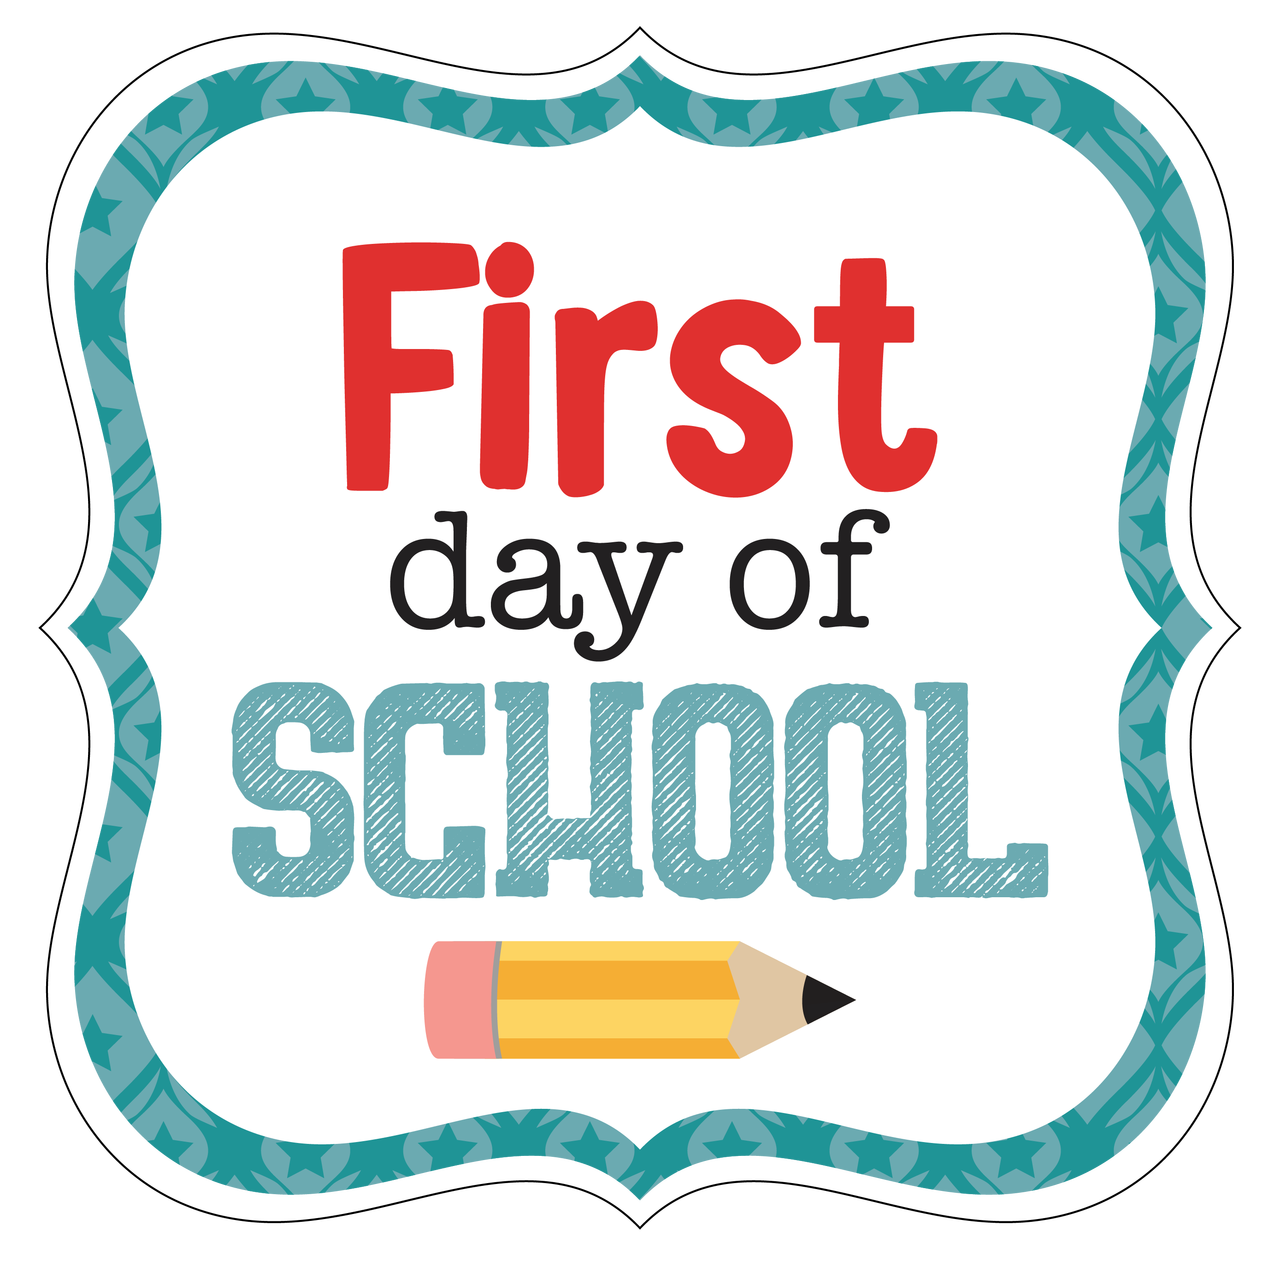 First Day Of School Print & Cut File